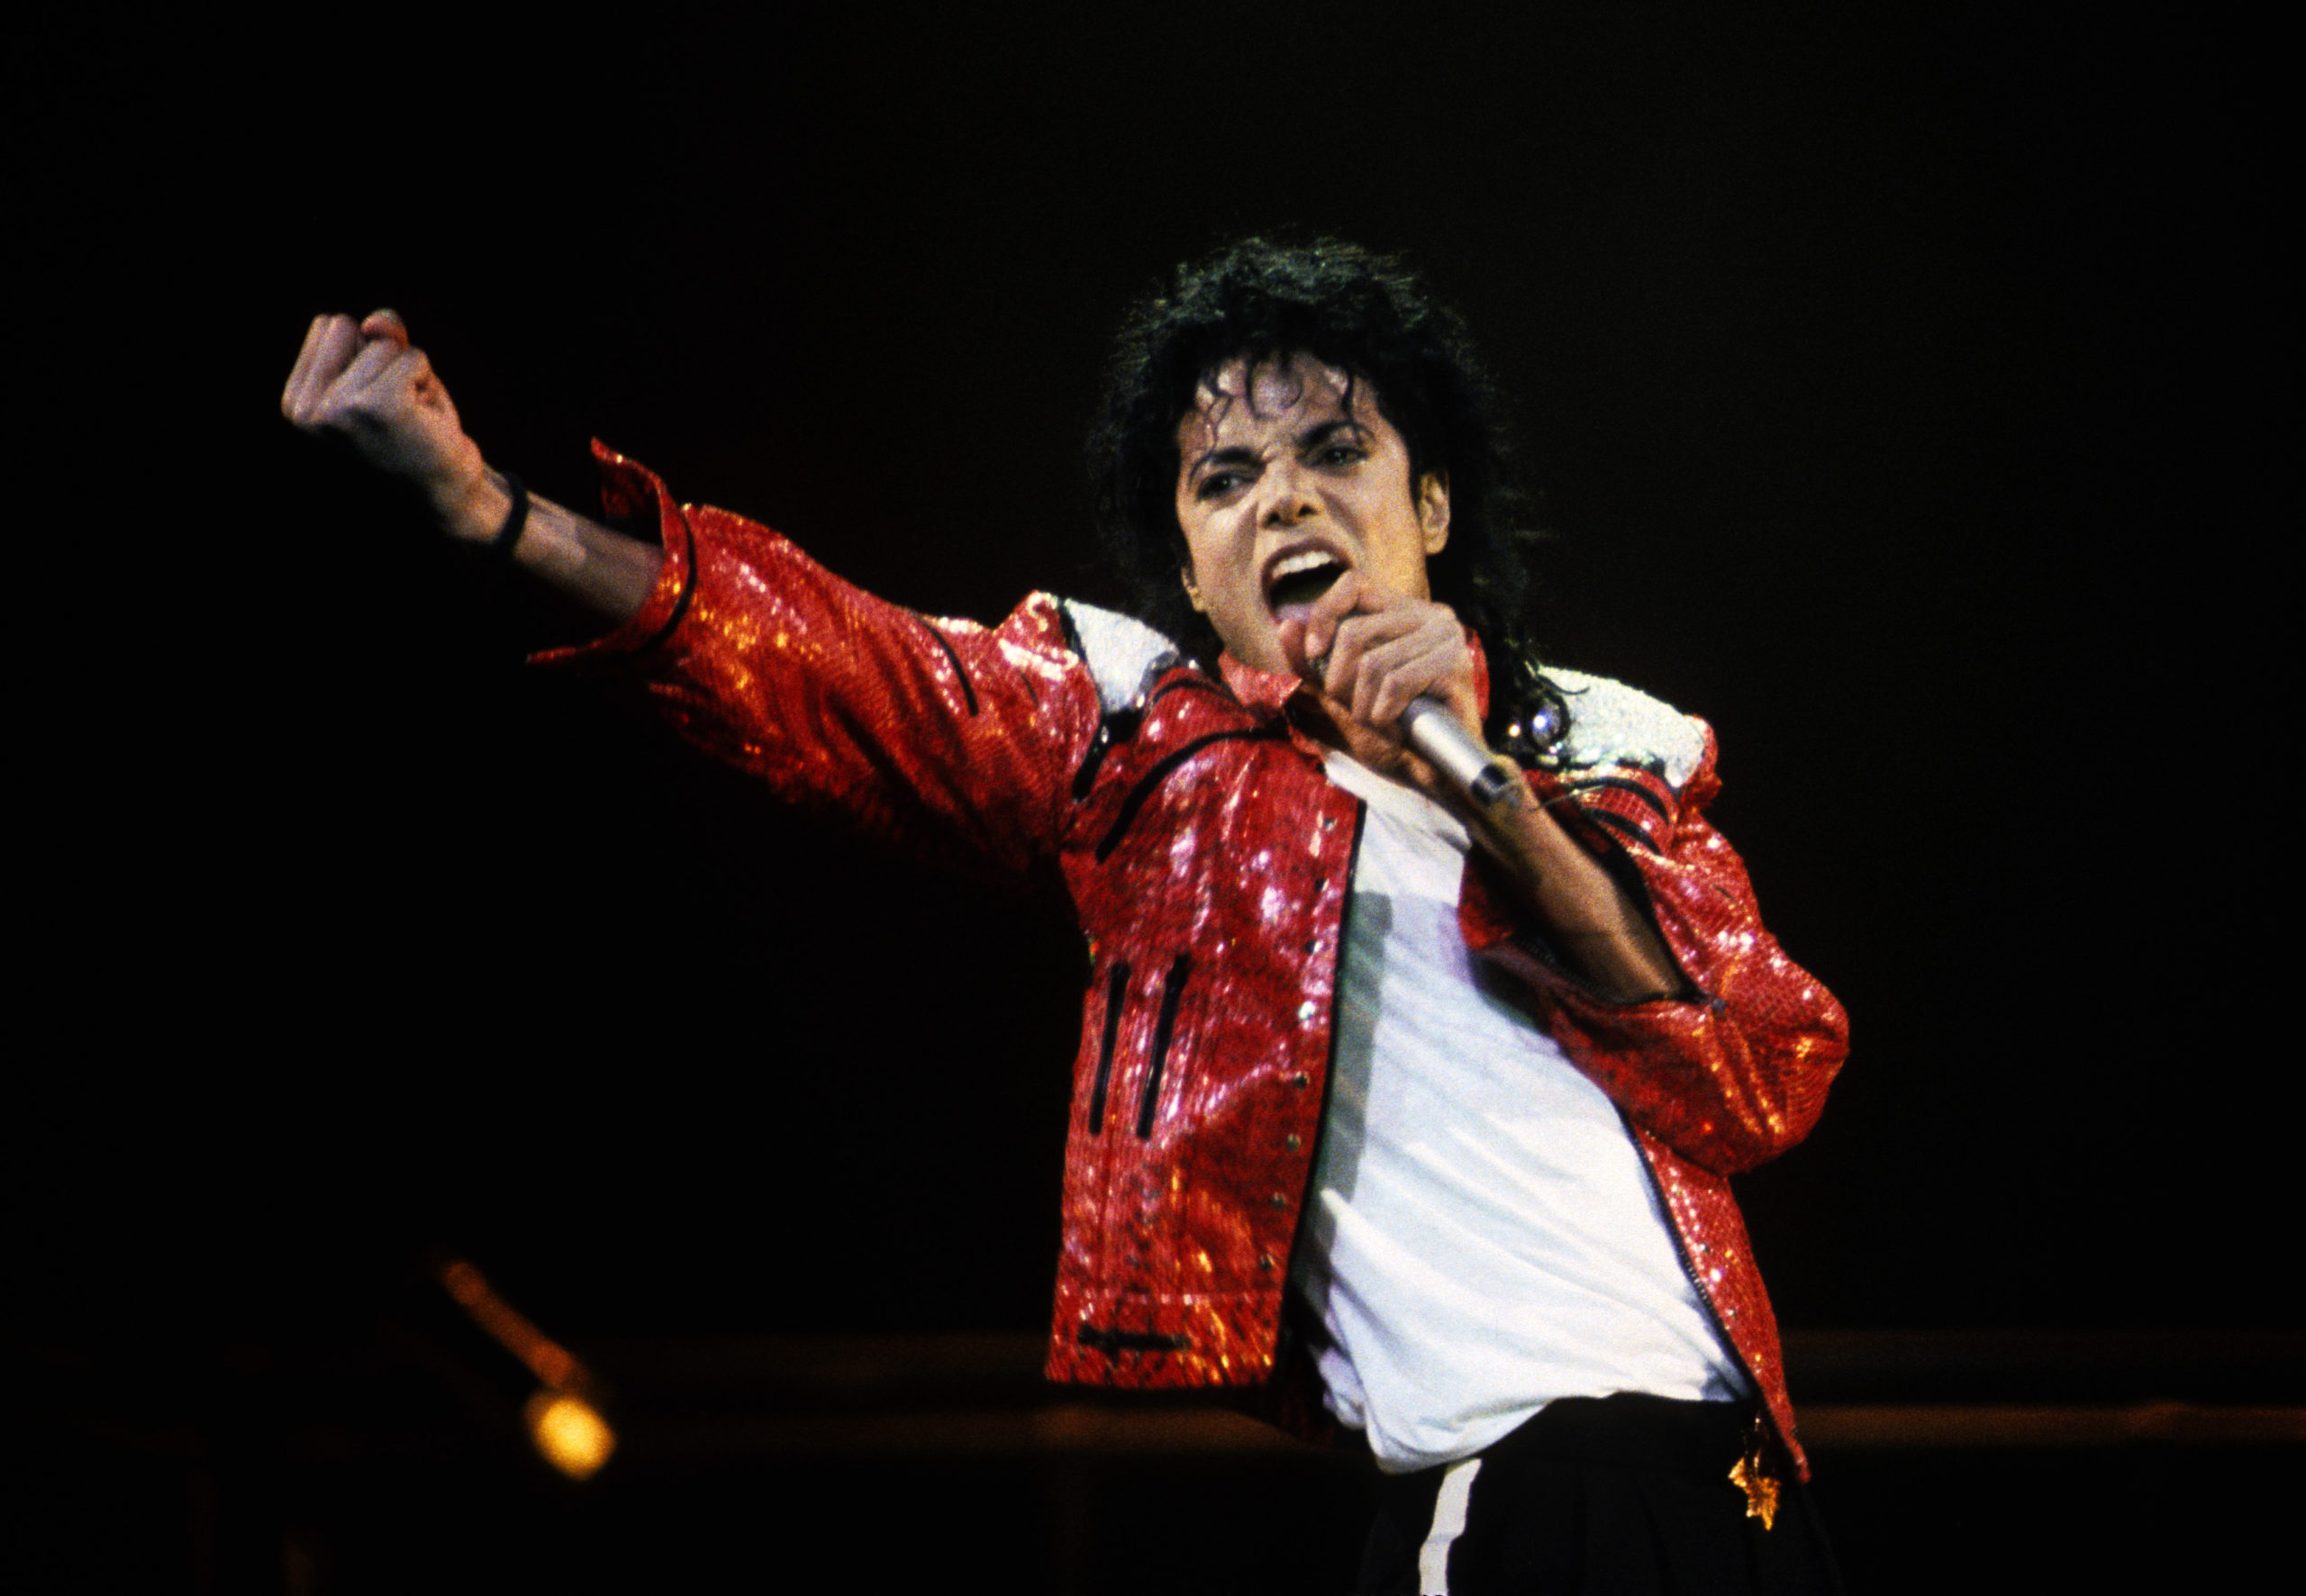 Michael Jackson property wins enchantment in HBO 'Leaving Neverland' lawsuit